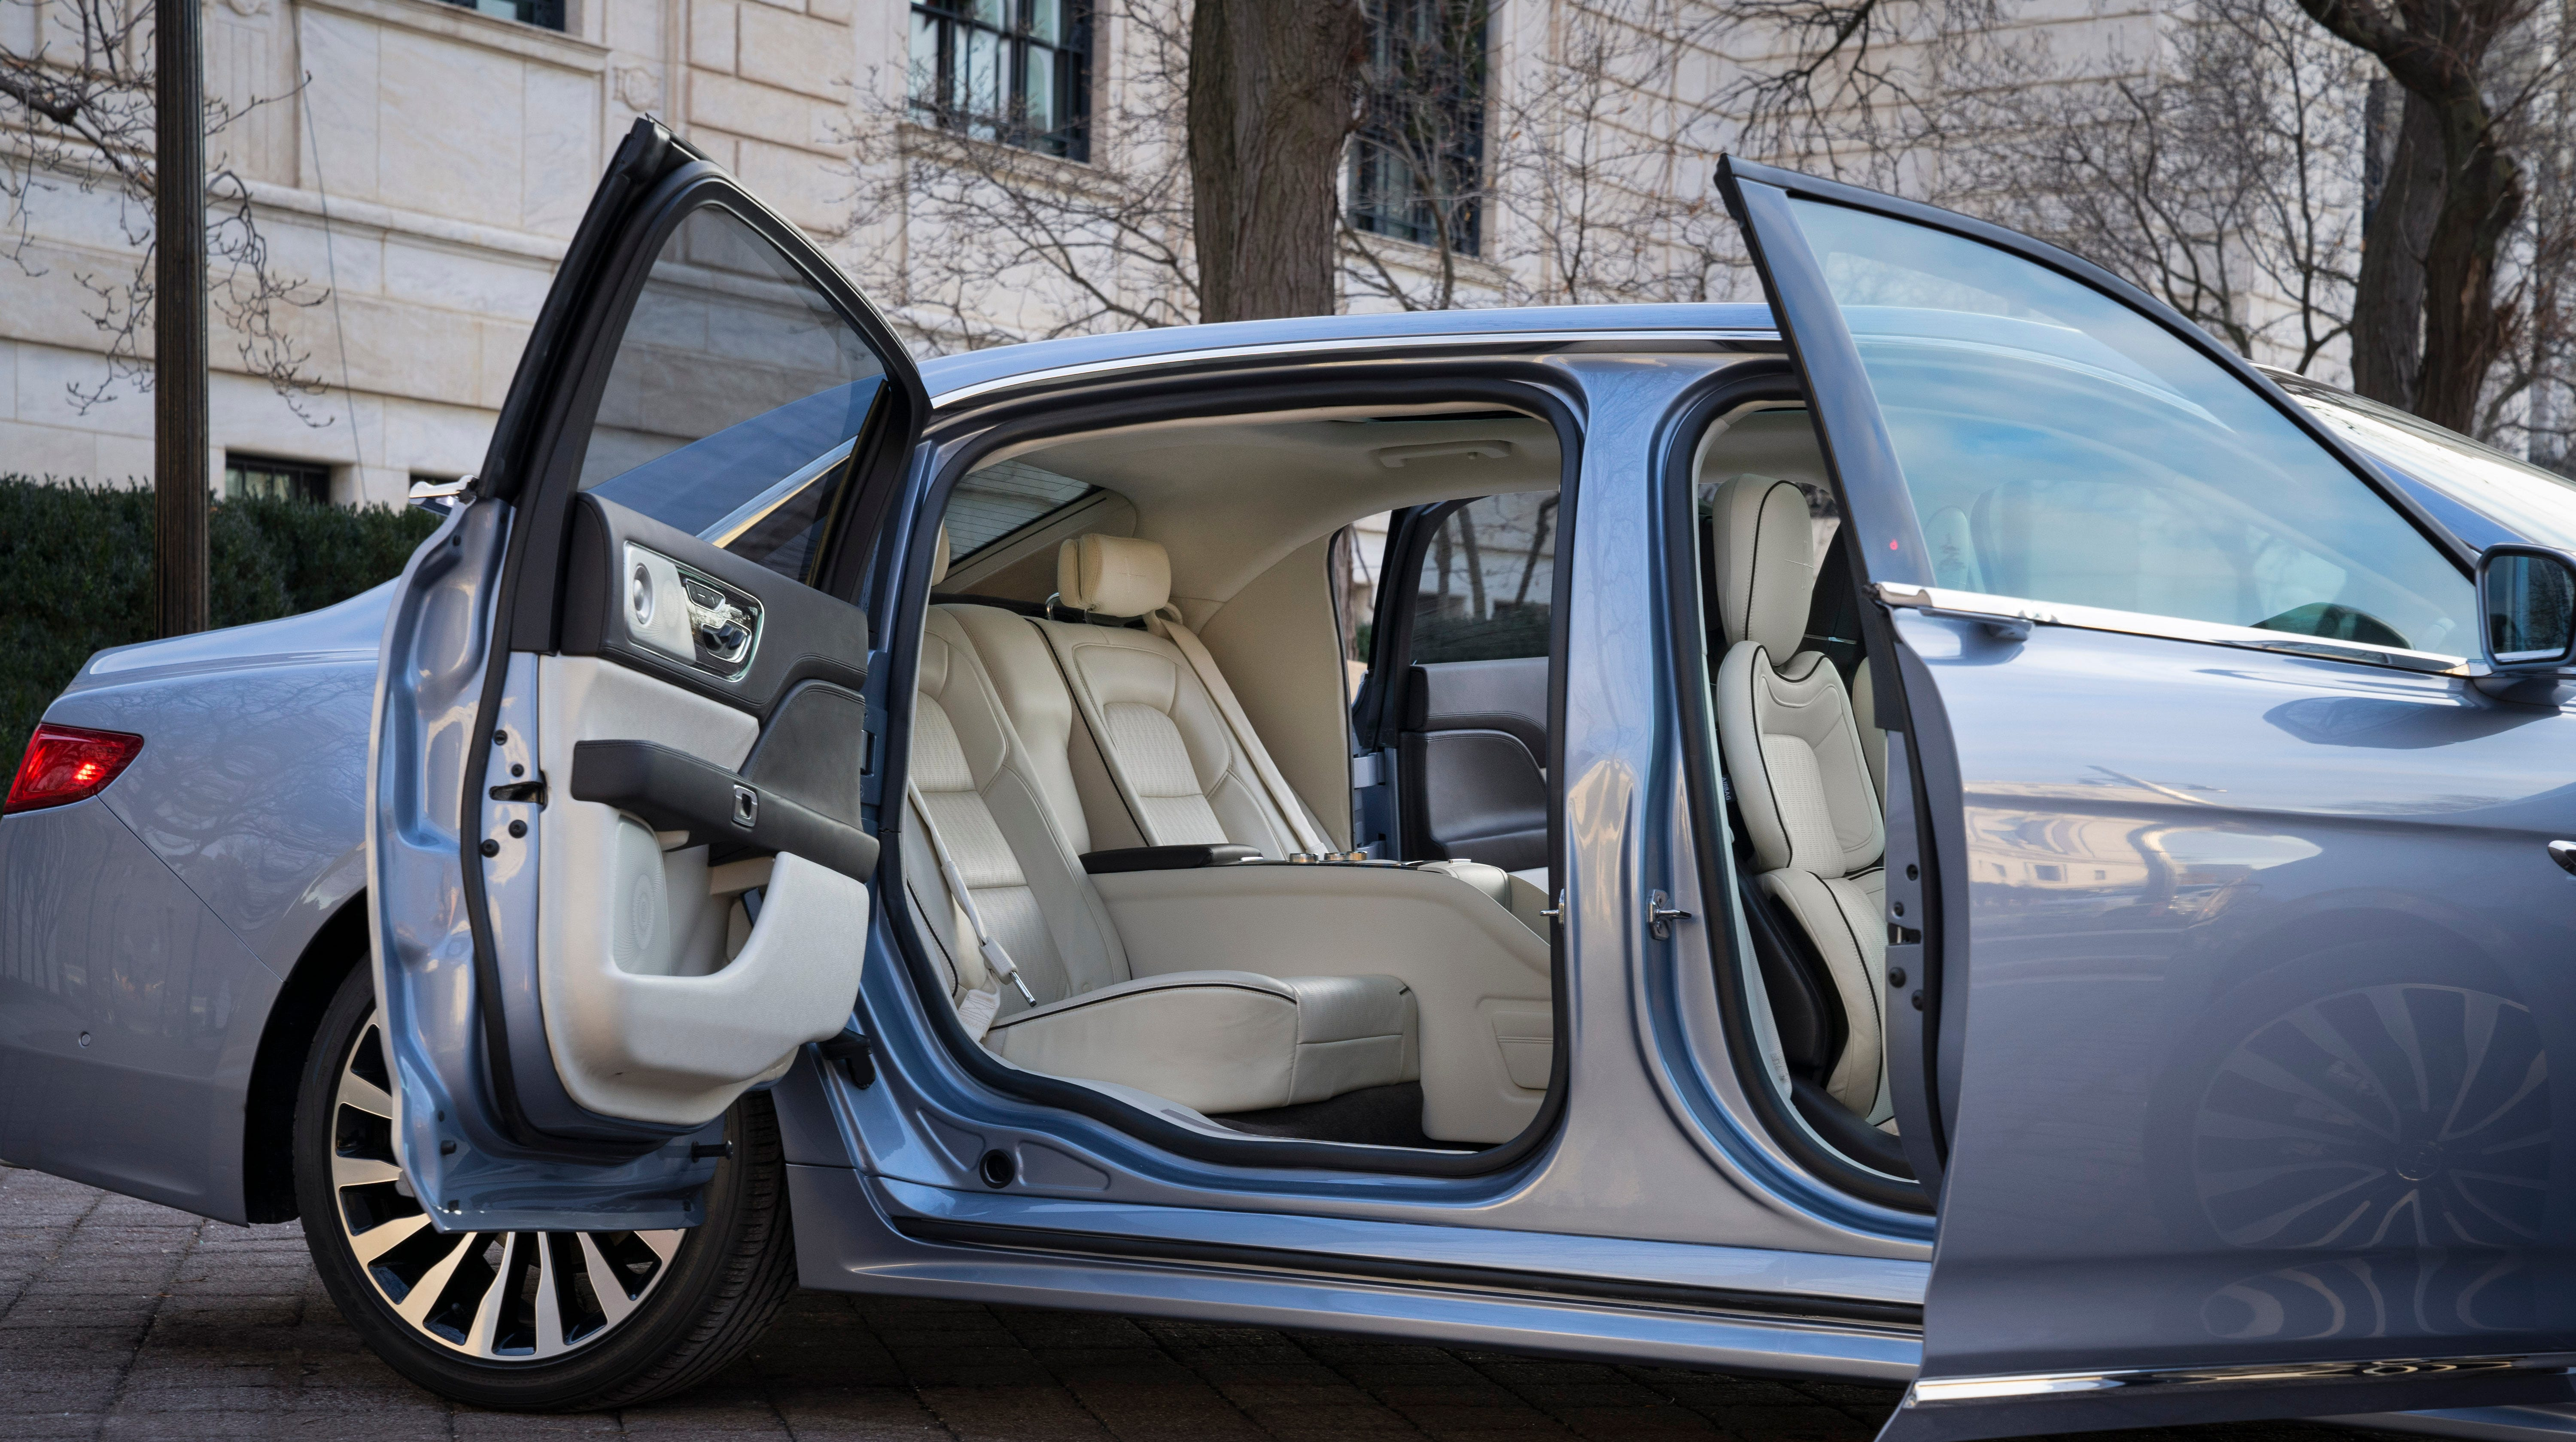 More Exclusive Than A Ford Gt A Lincoln Continental With Suicide Doors